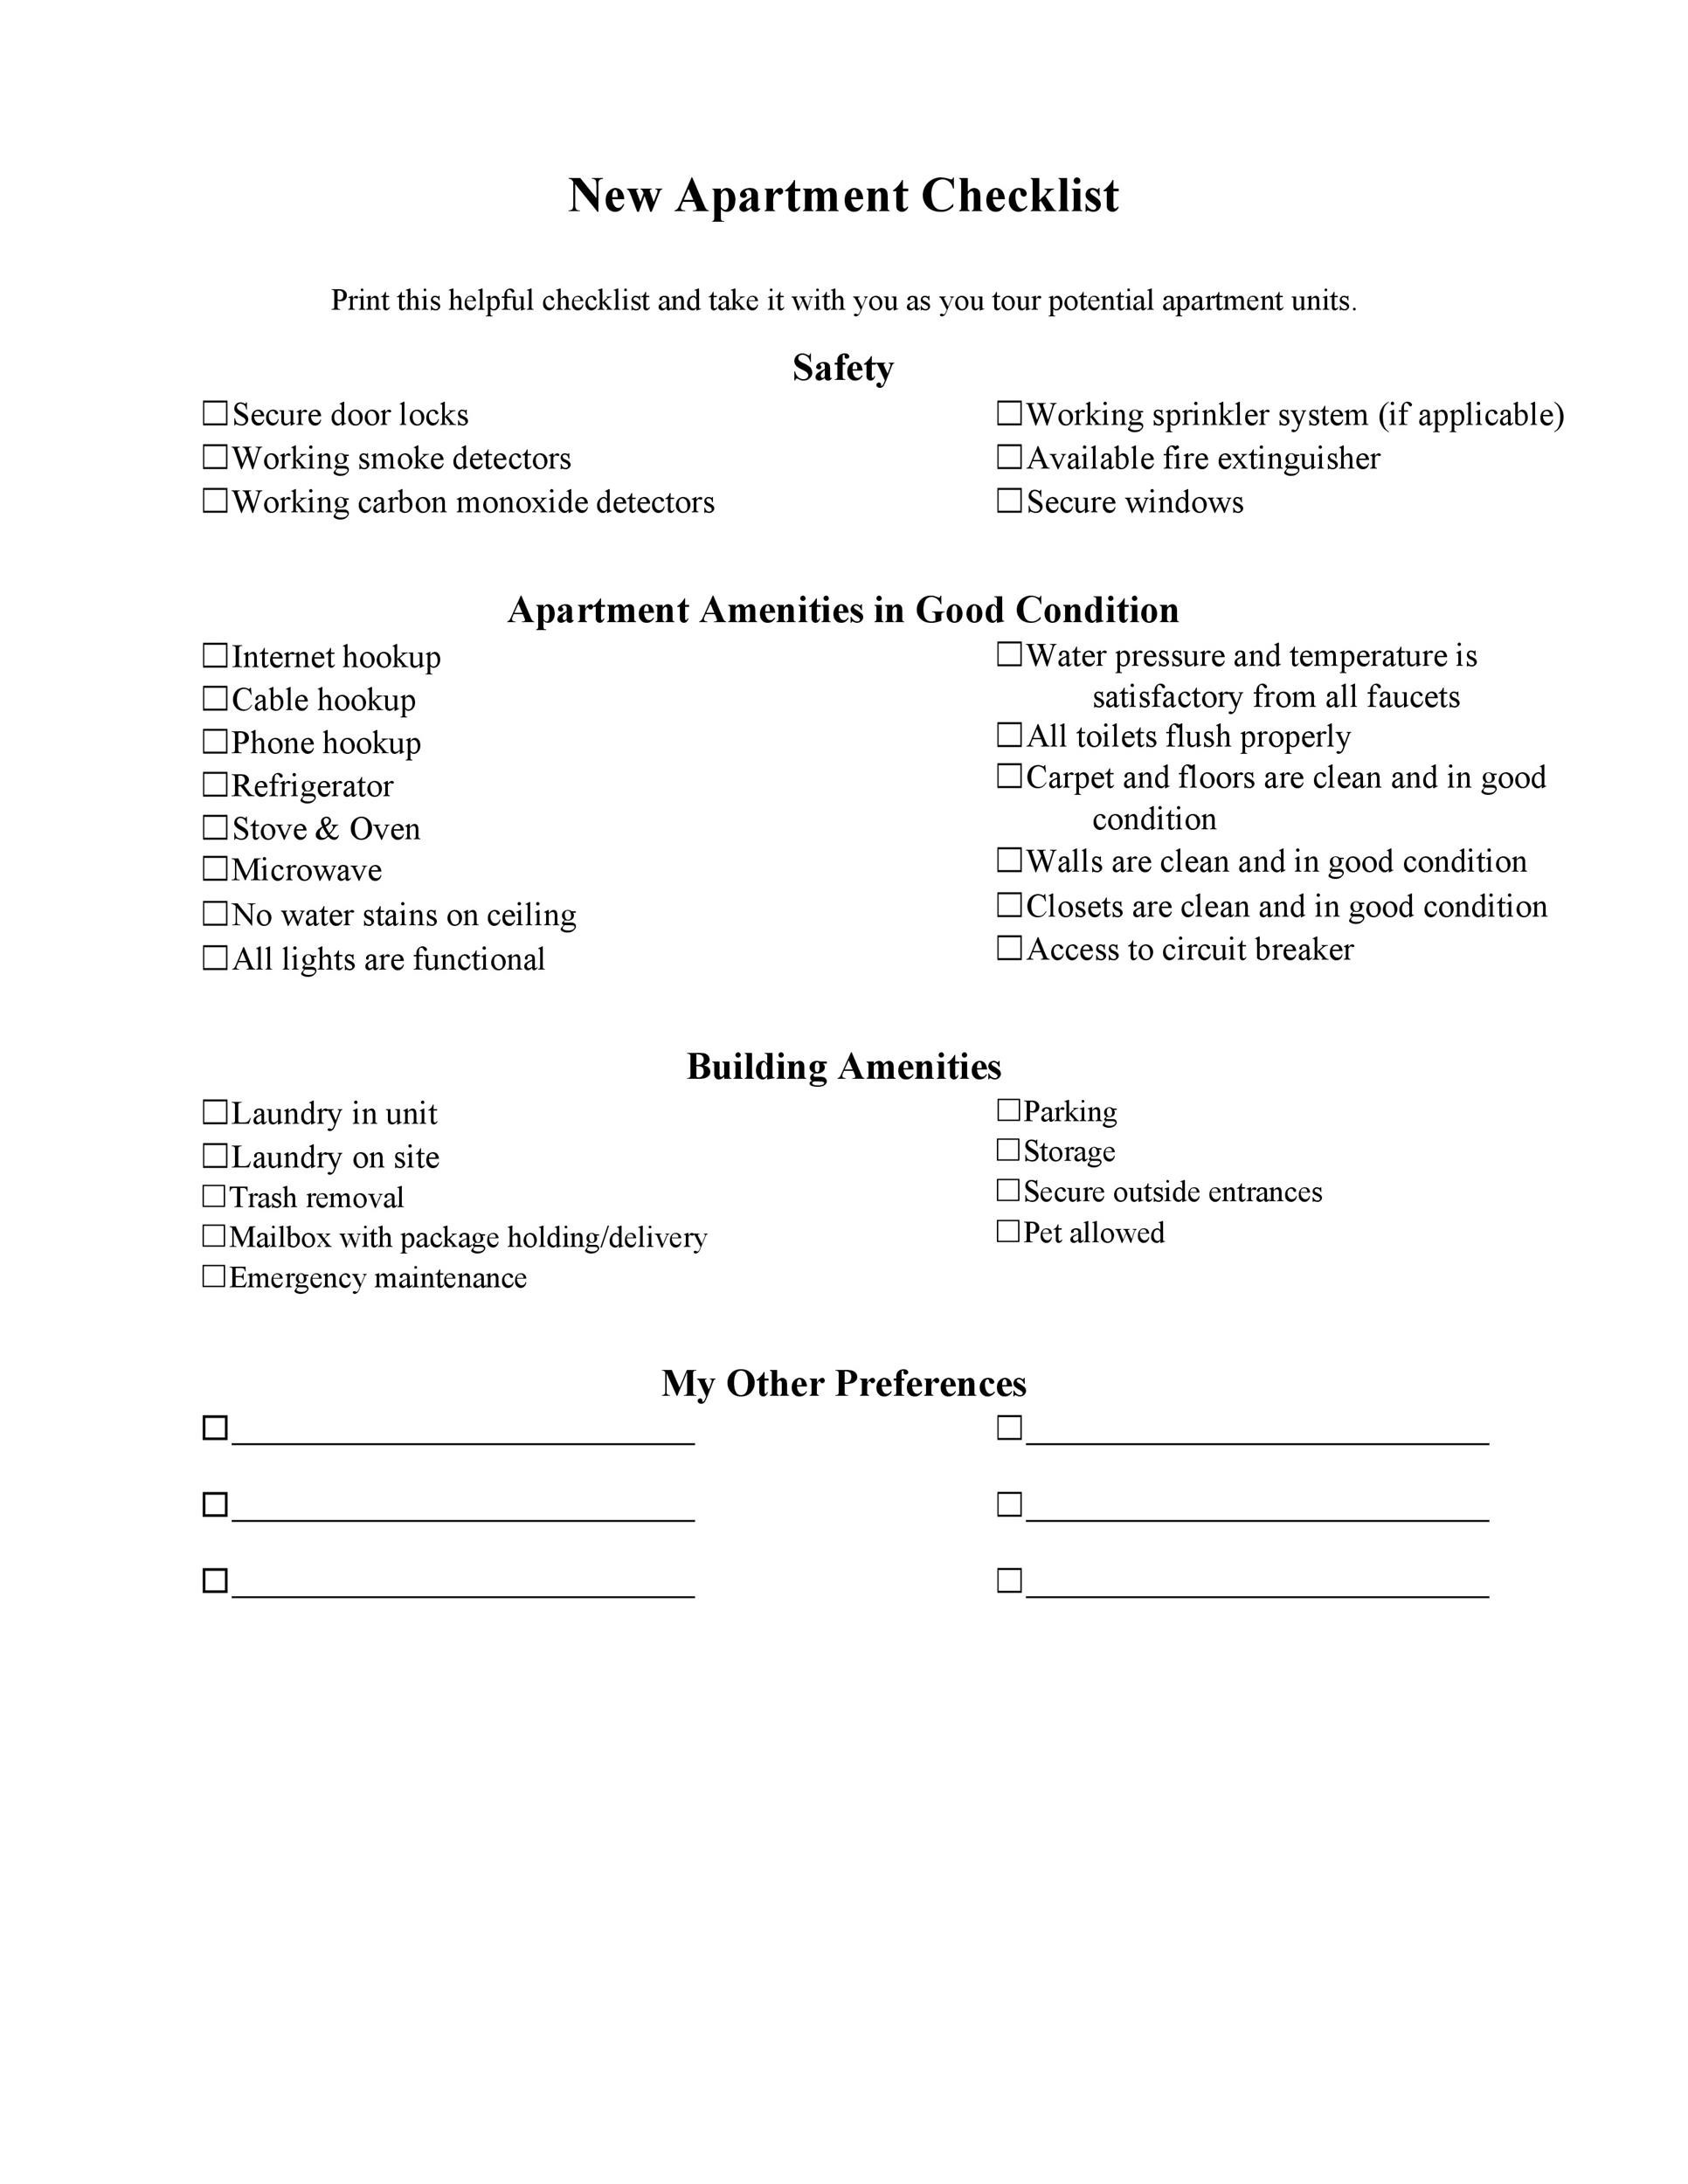 Free apartment checklist 19